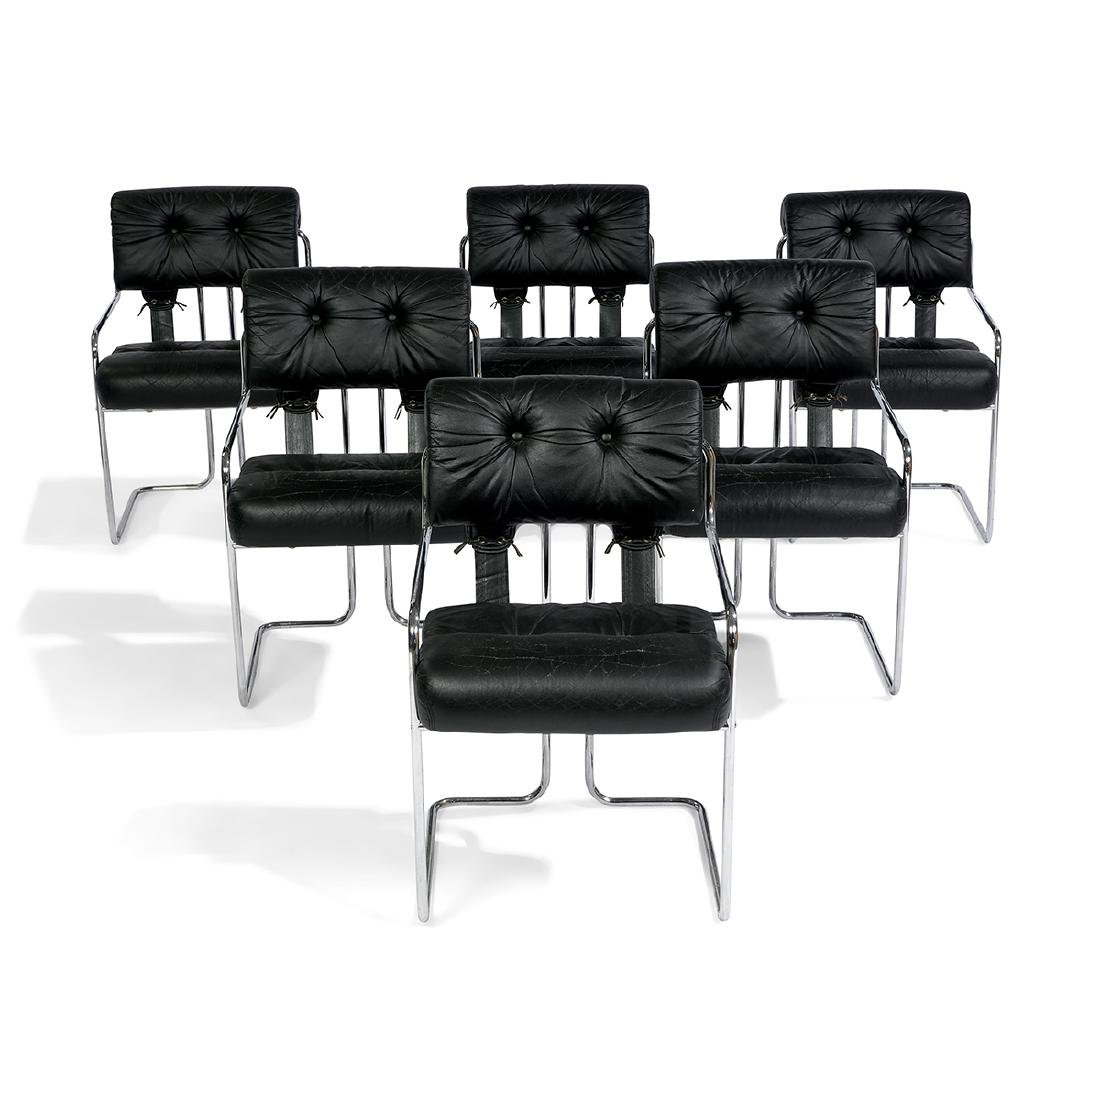 Guido Faleschini for Pace Tucroma chairs, six - 2